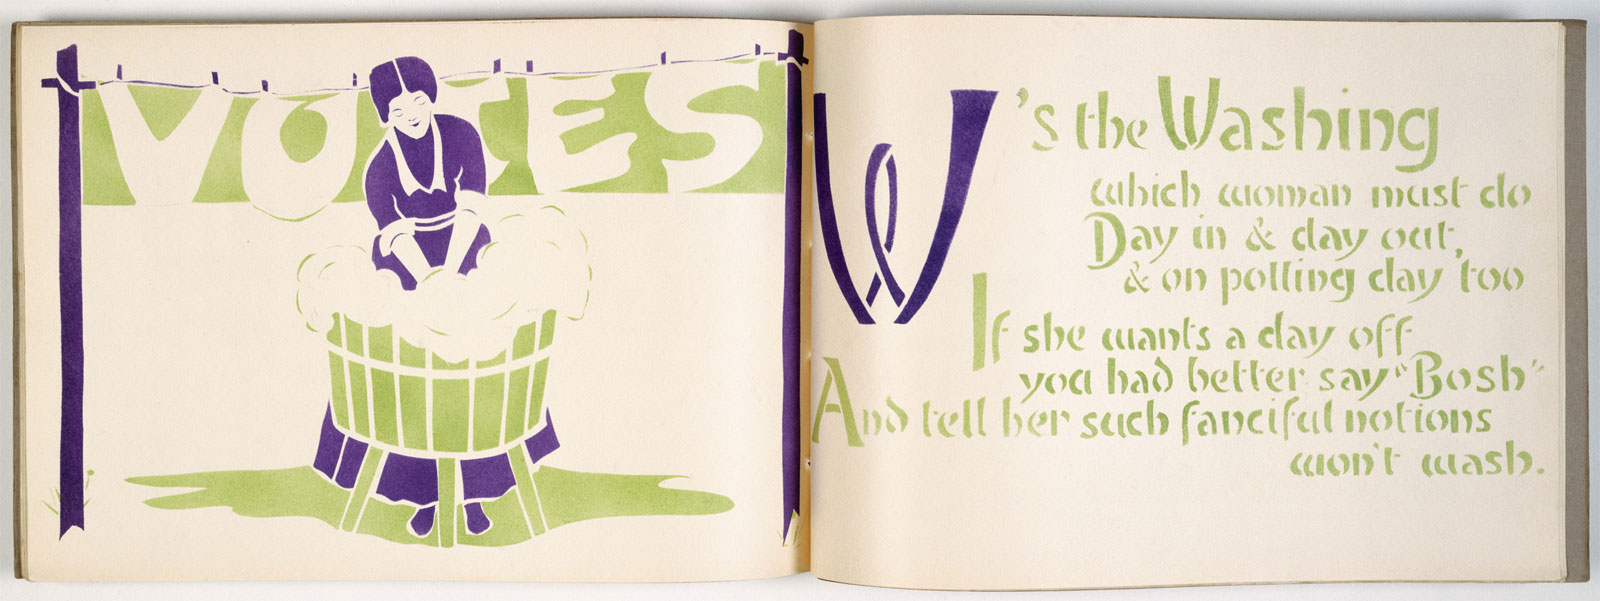 'An Anti-Suffrage Alphabet' was designed by Laurence Housman and edited by Leonora Tyson, the organiser of the Lambeth/Southwark Women's Social and Political Union. The verses, documenting disenfranchised women's unfair subordination, lampooned opponents of women's suffrage. The book includes stencilled illustrations in the suffragette colours of purple and green by a number of female artists including Alice B. Woodward, Pamela C. Smith and Ada P. Ridley. The book was produced to raise funds for the suffragette campaign. Advertised in 'Votes for Women' on 15 December 1911, it was marketed as a suitable gift for suffragette supporters. Leonora received book orders at her home address in Streatham, where she printed each edition by hand.